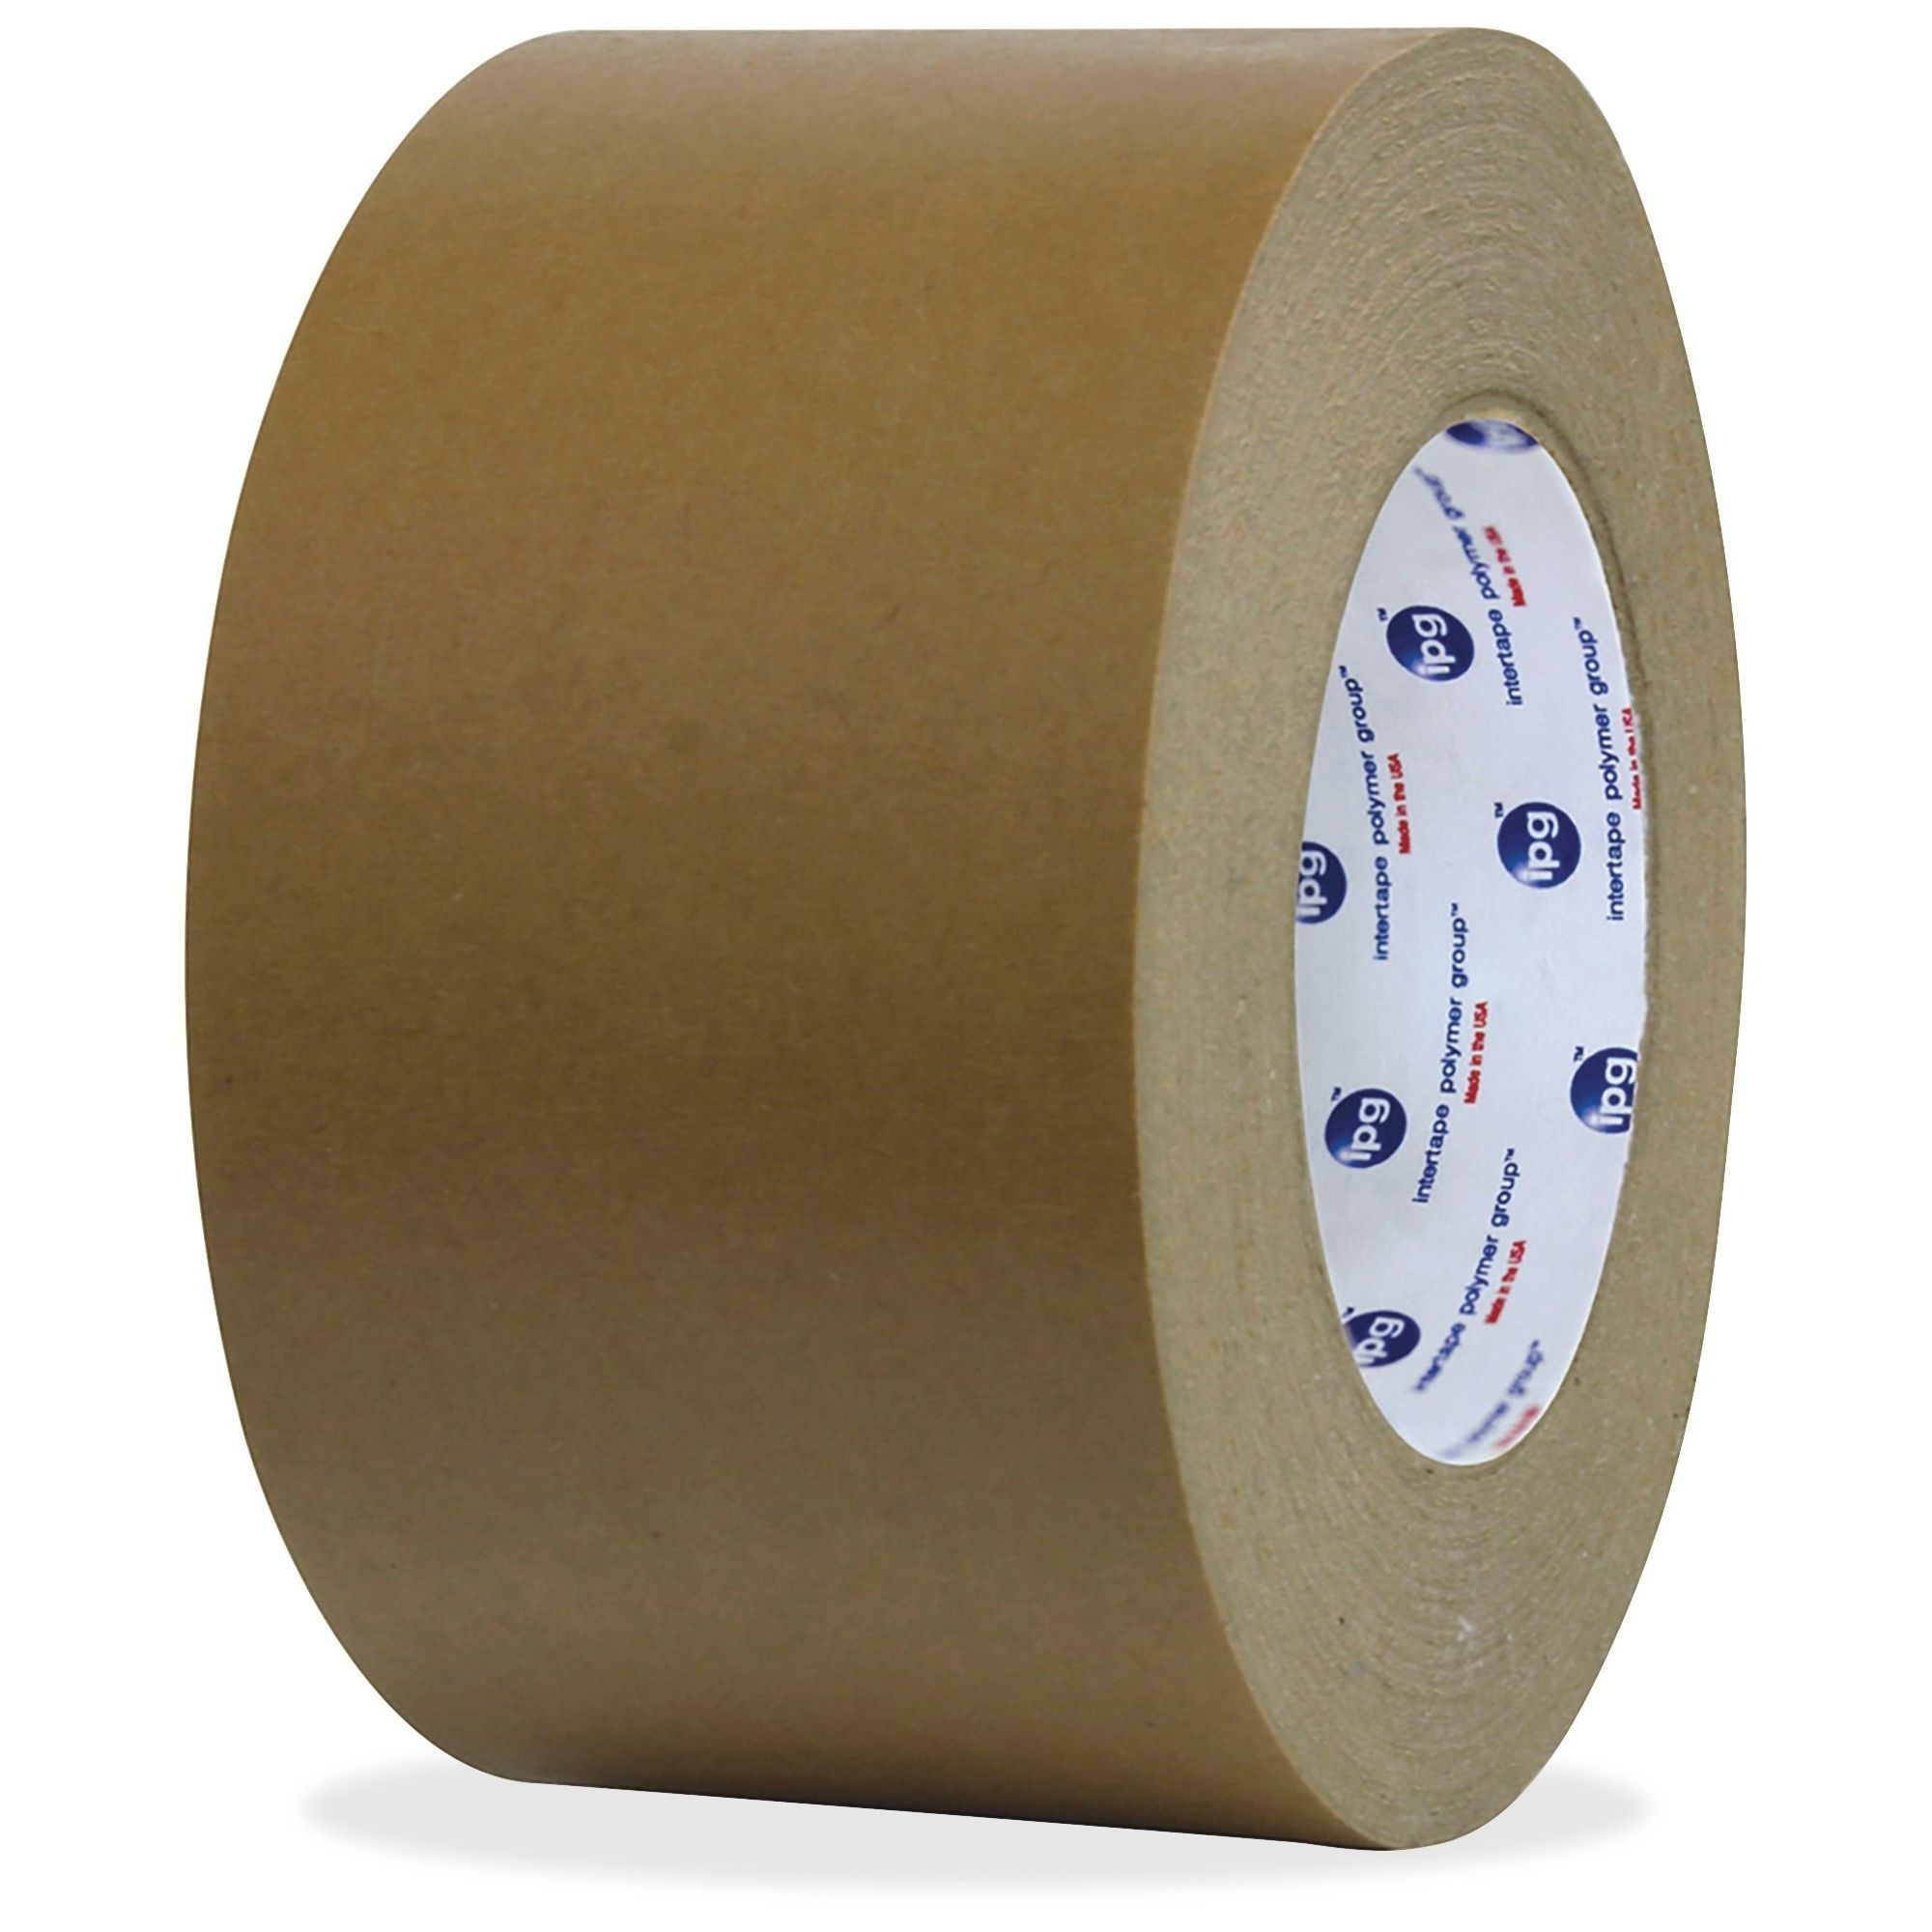 Online Shopping Bedding Furniture Electronics Jewelry Clothing More Tape Masking Tape Synthetic Rubber